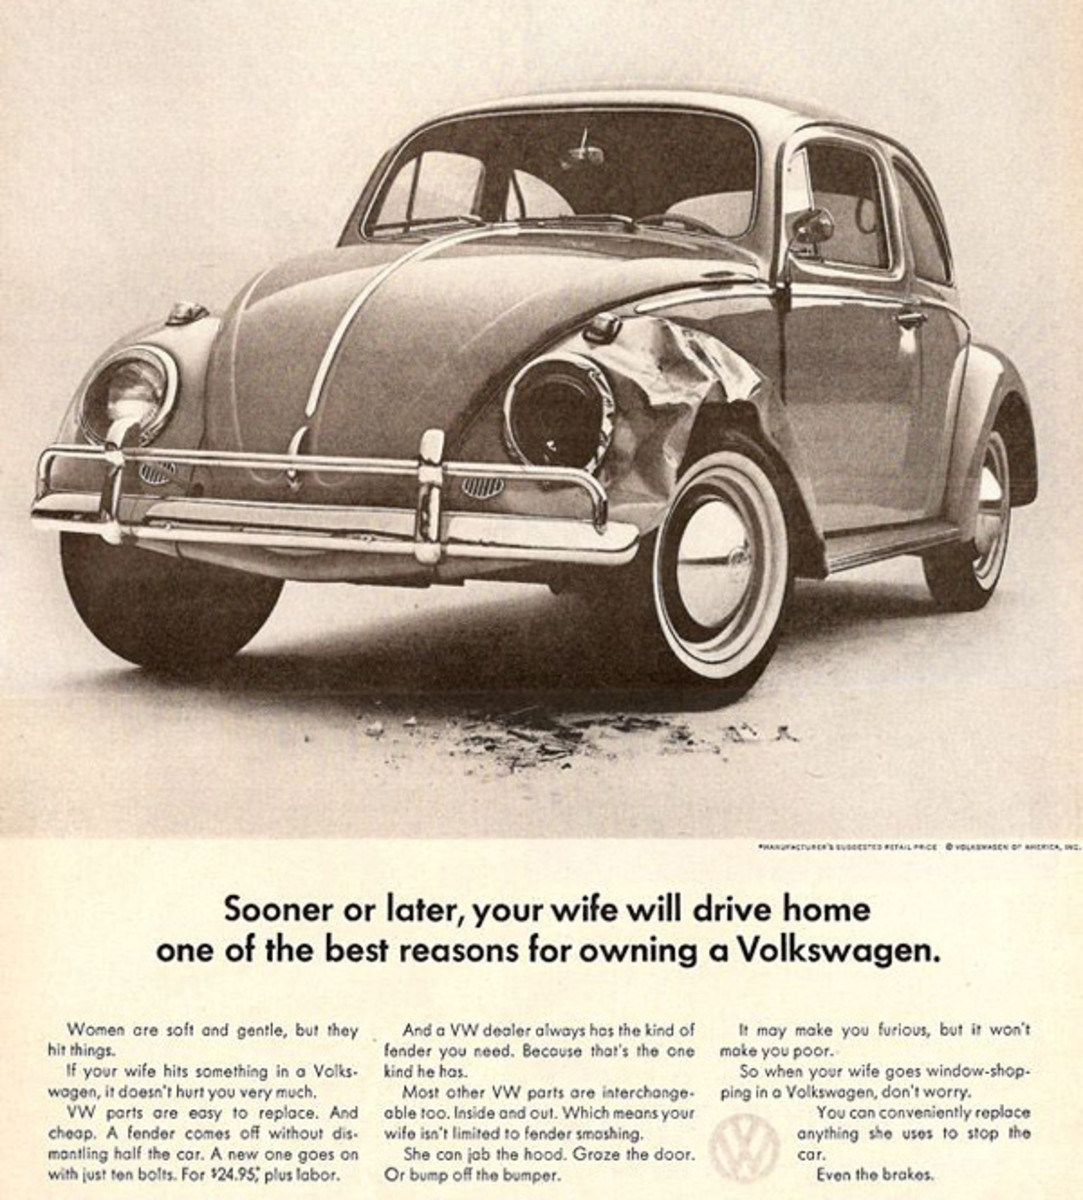 a-little-car-humor-from-another-era-vintage-ads-that-would-never-make-it-today